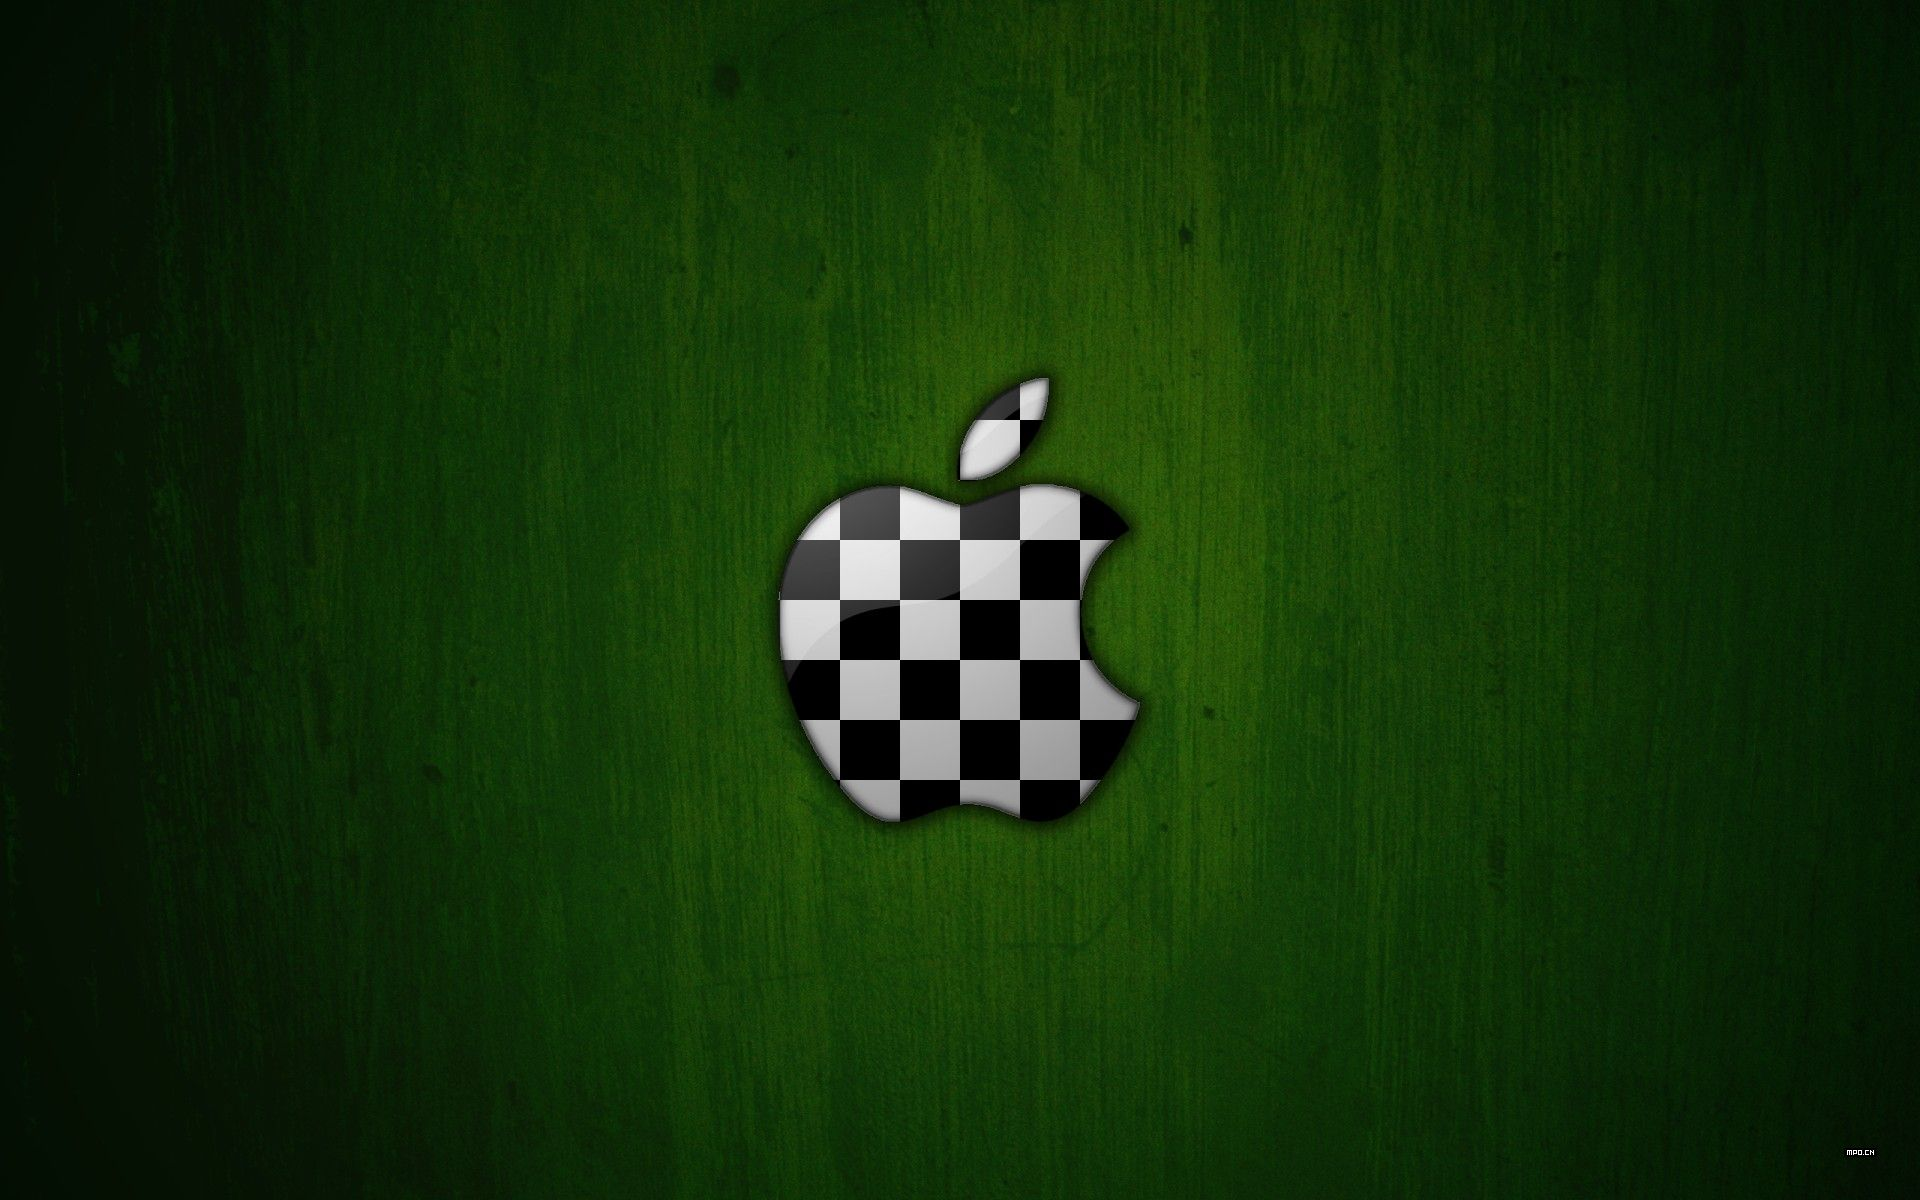 cool apple logo wallpaper #12